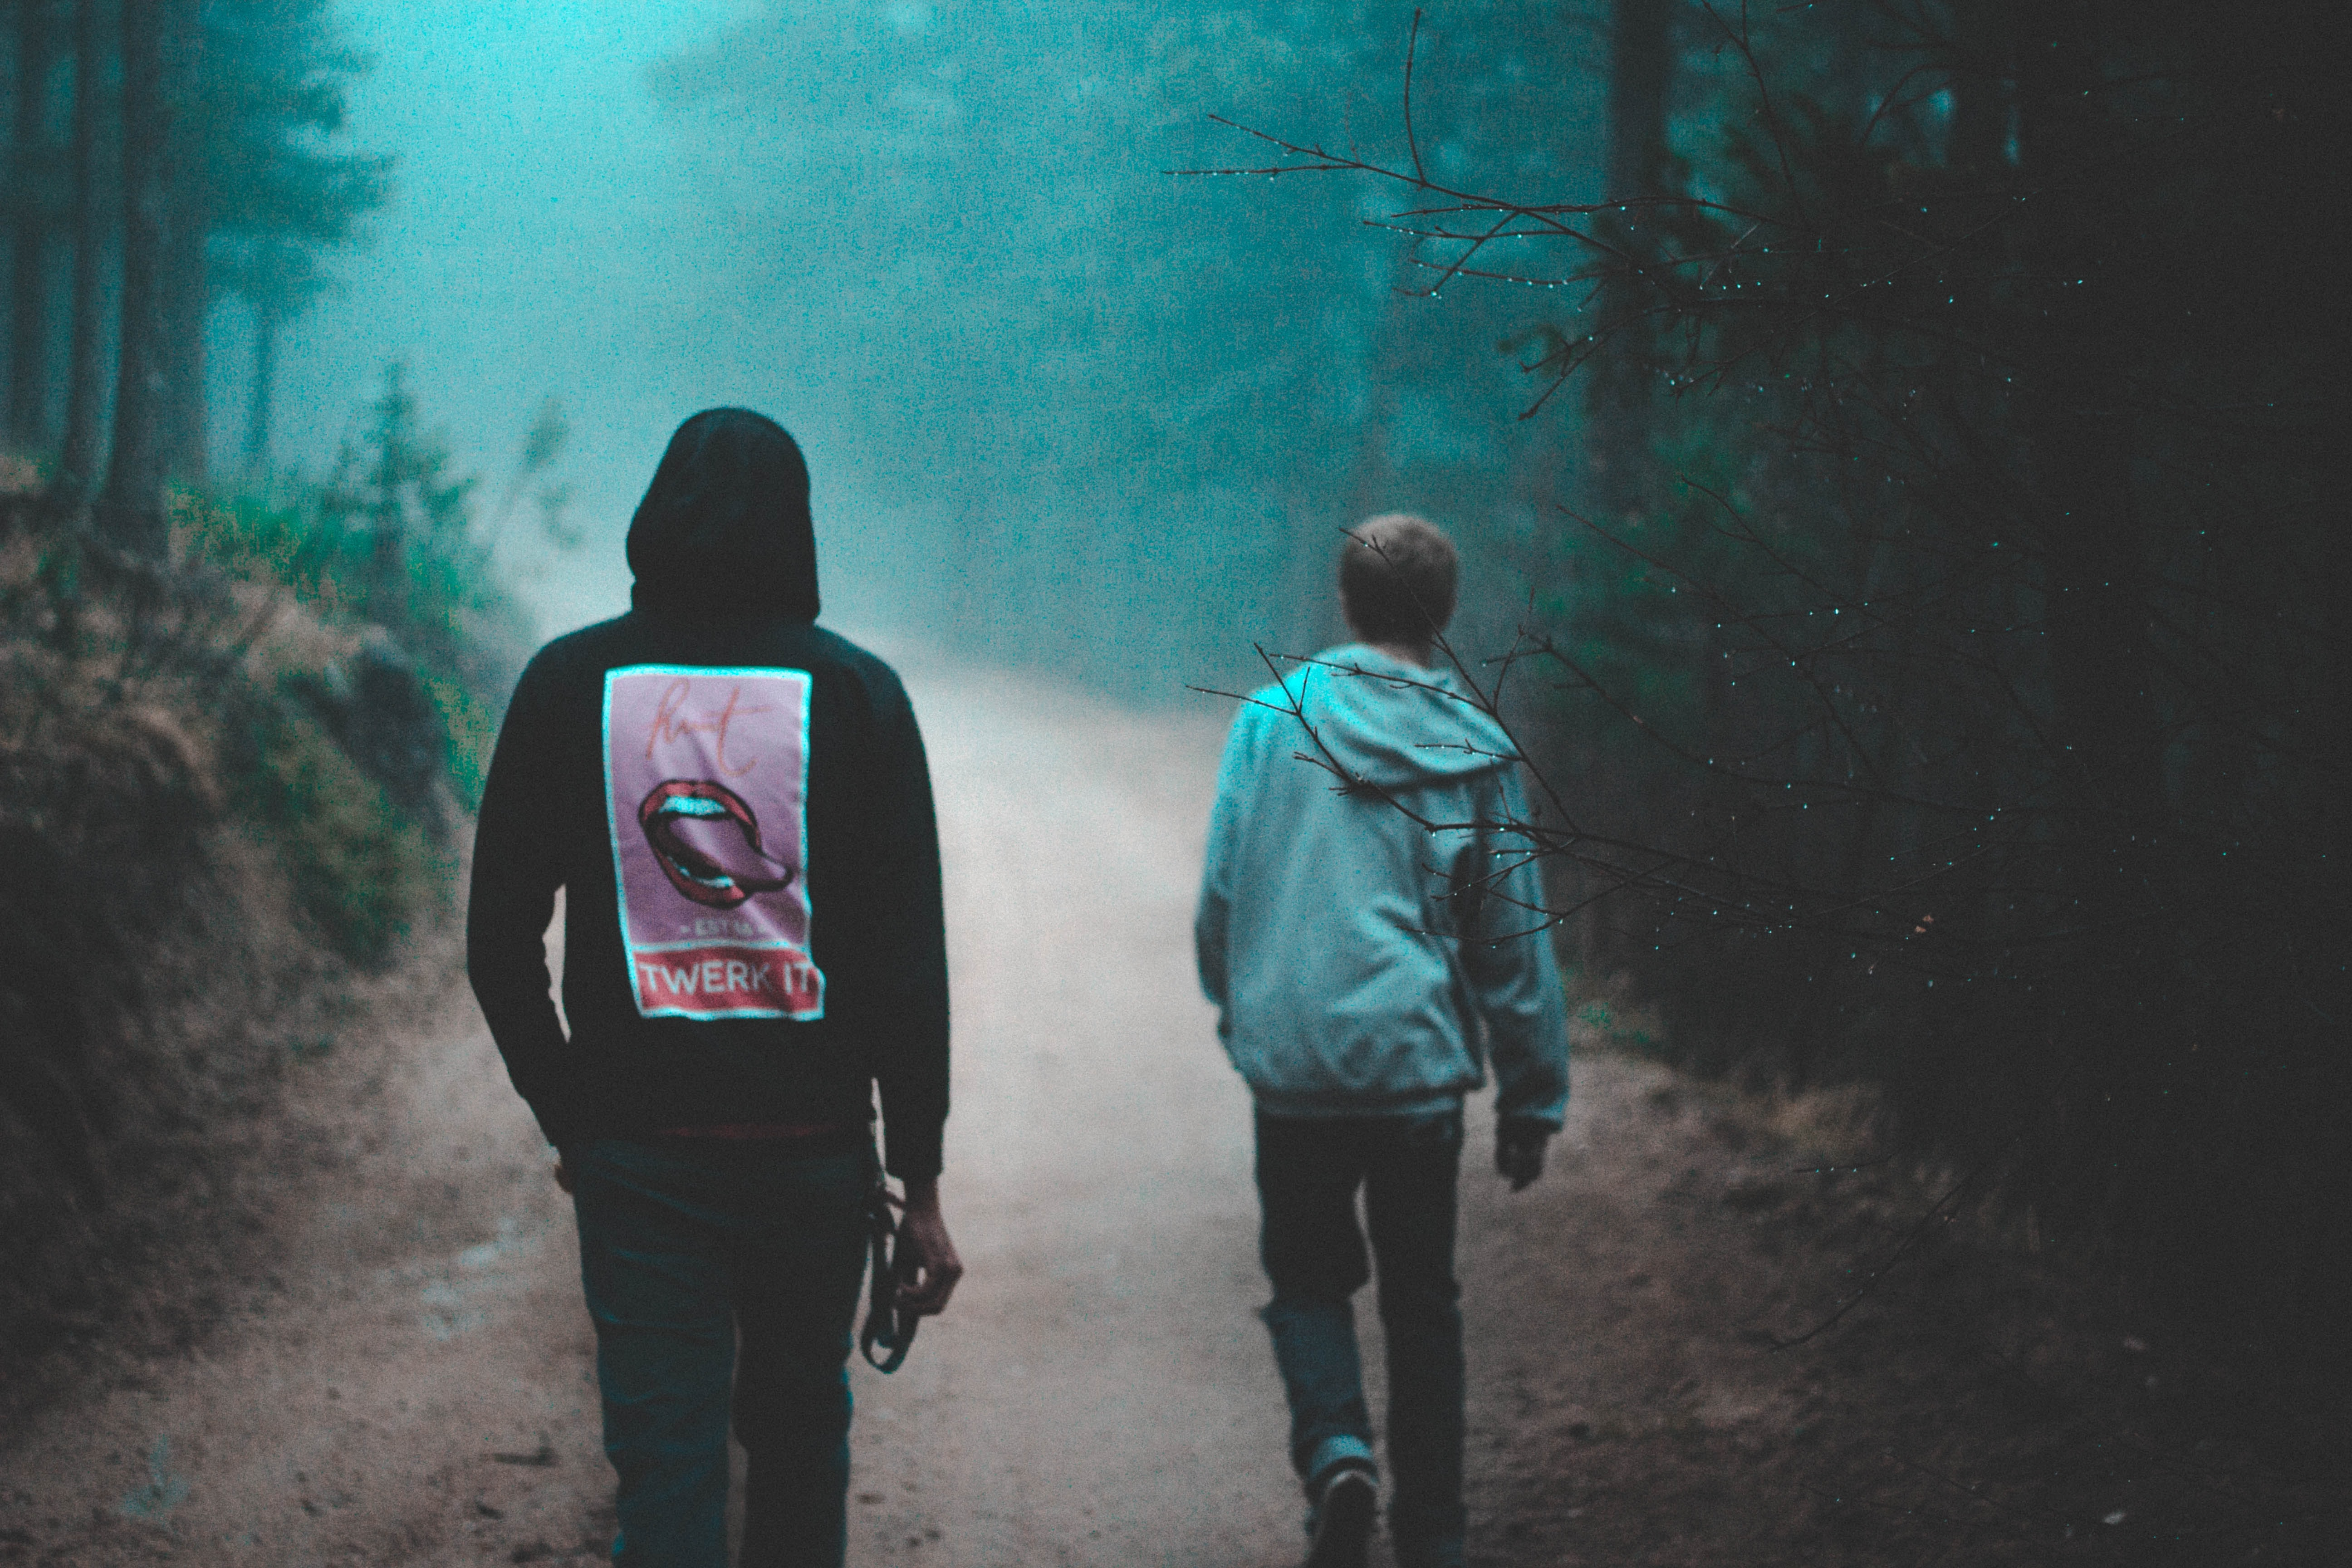 two person walking on dirt road between green trees